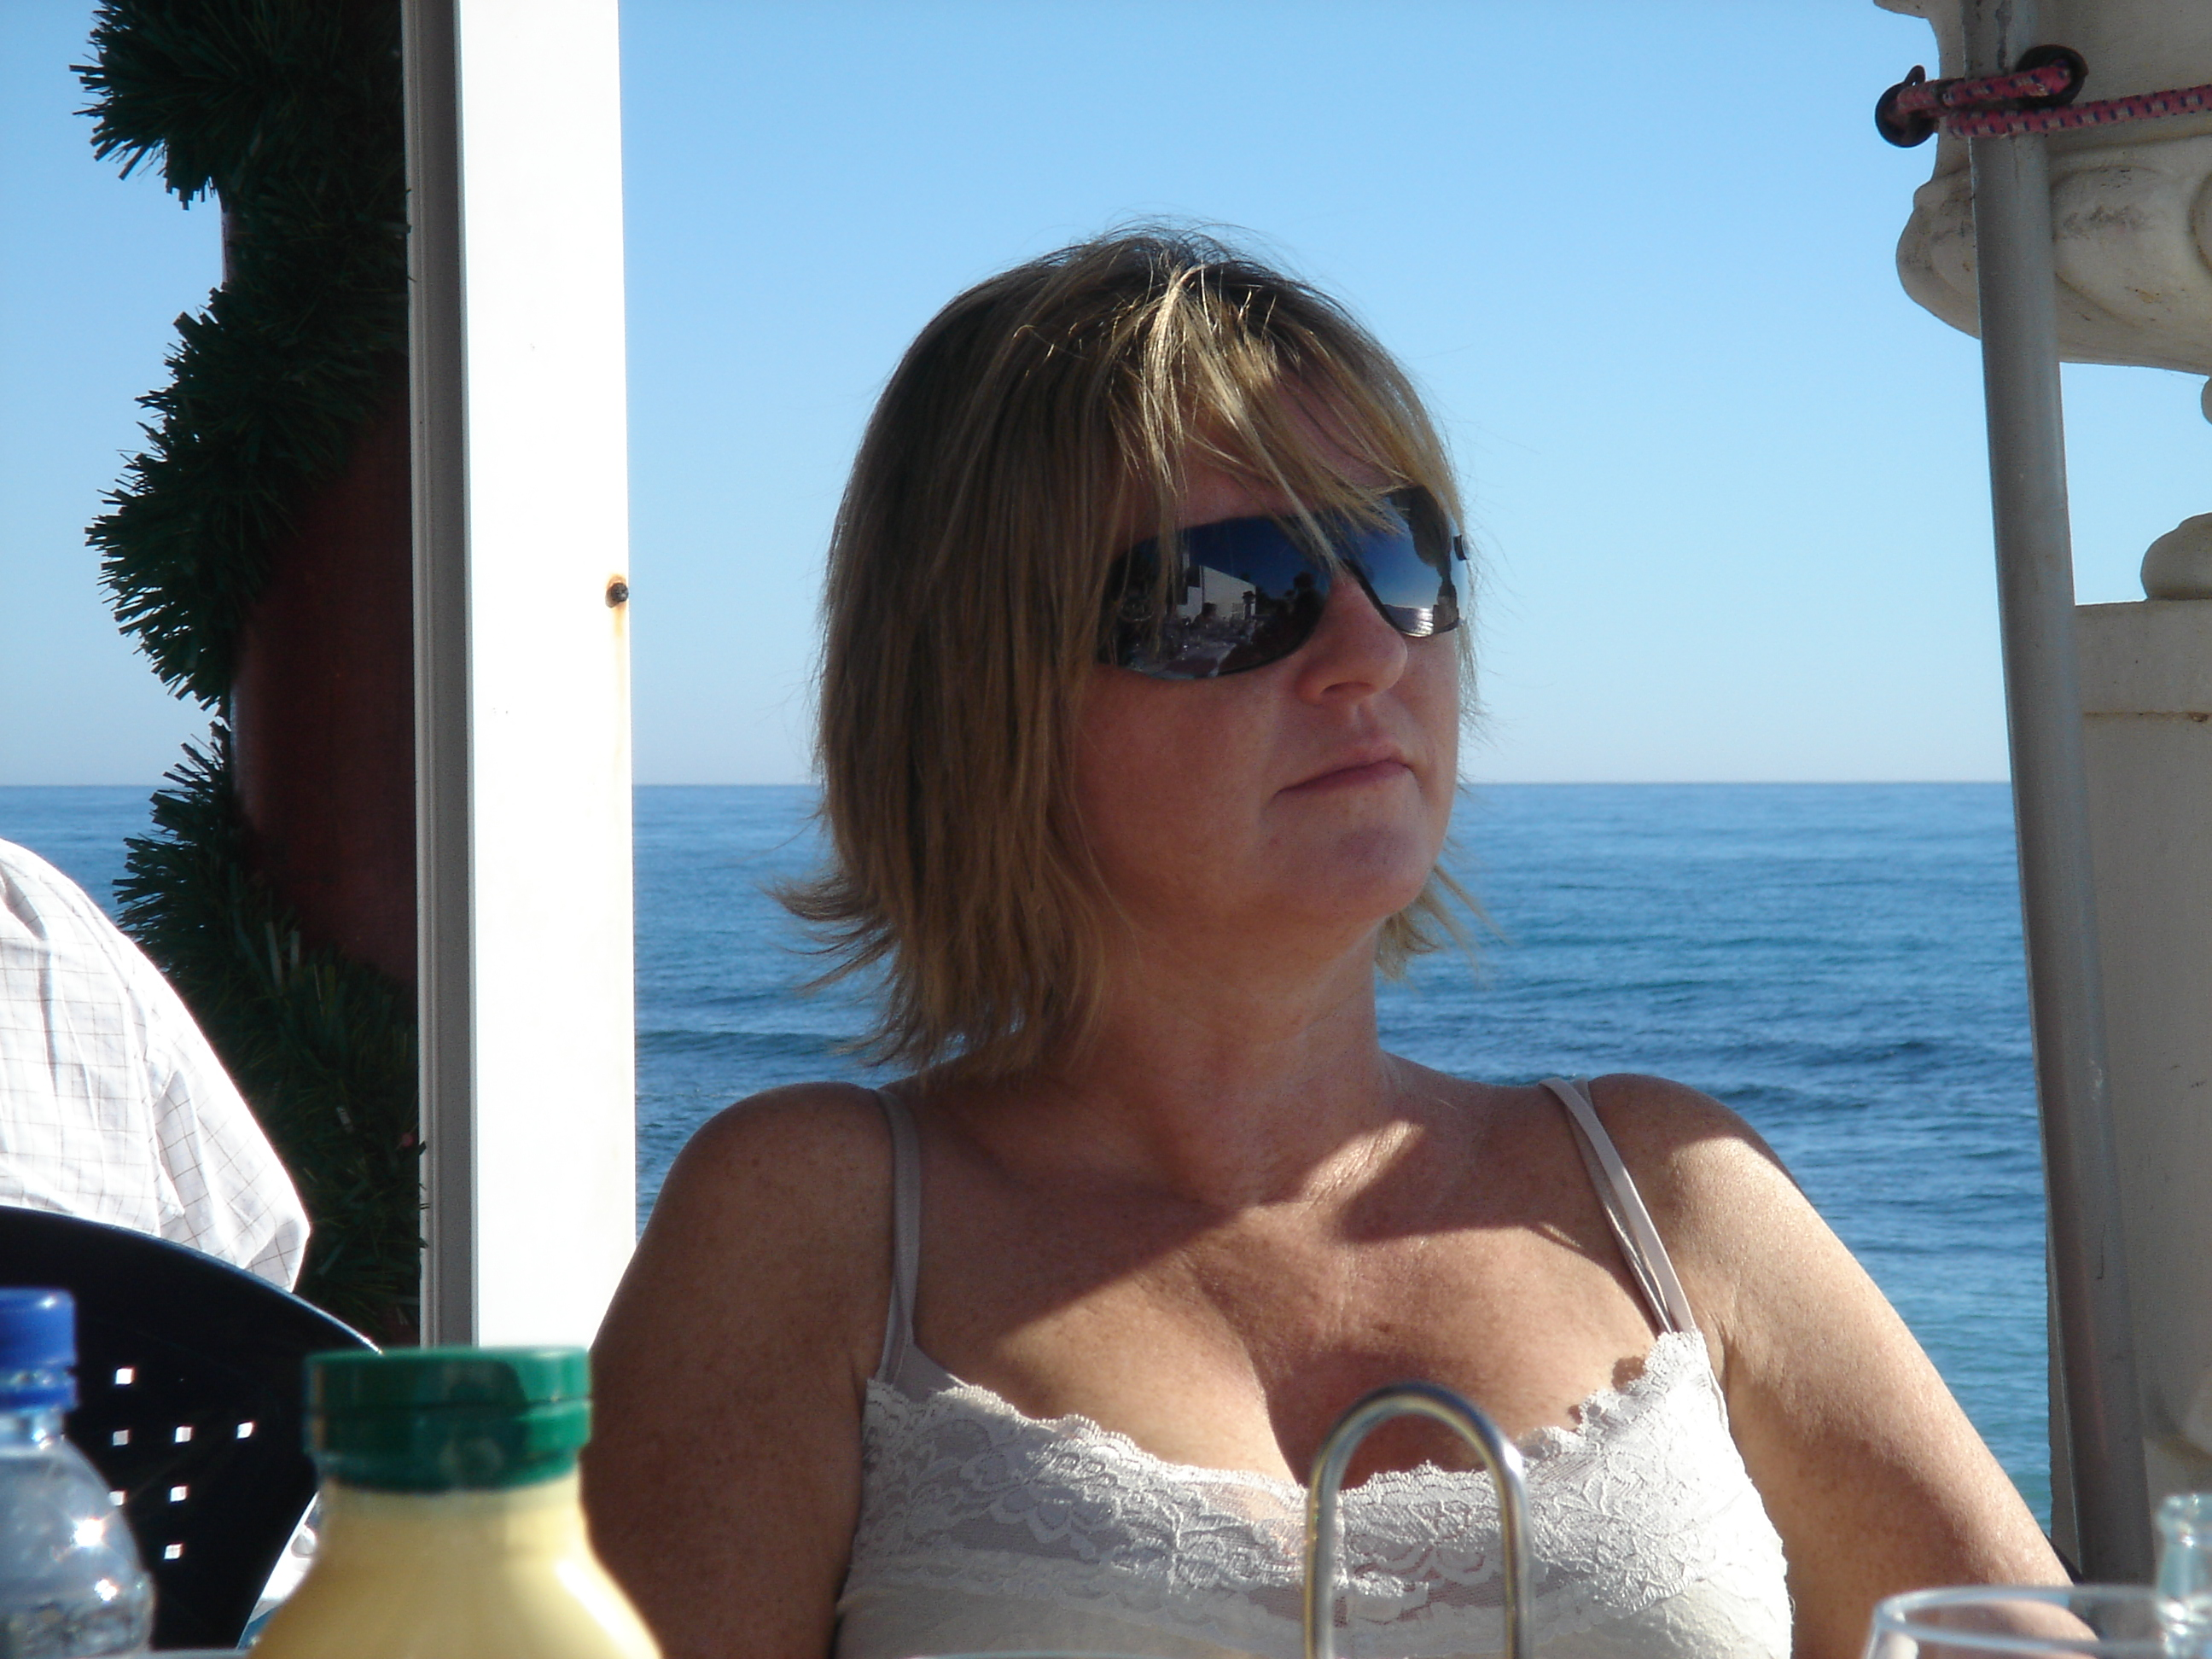 Sue Hildreth, Sales Manager at Design Holidays(blog.designholidays.co.uk)has been selling bespoke holidays to the talented and famous for many years. Trusted for her expertise and professionalism, her knowledge on Design Holidays […]